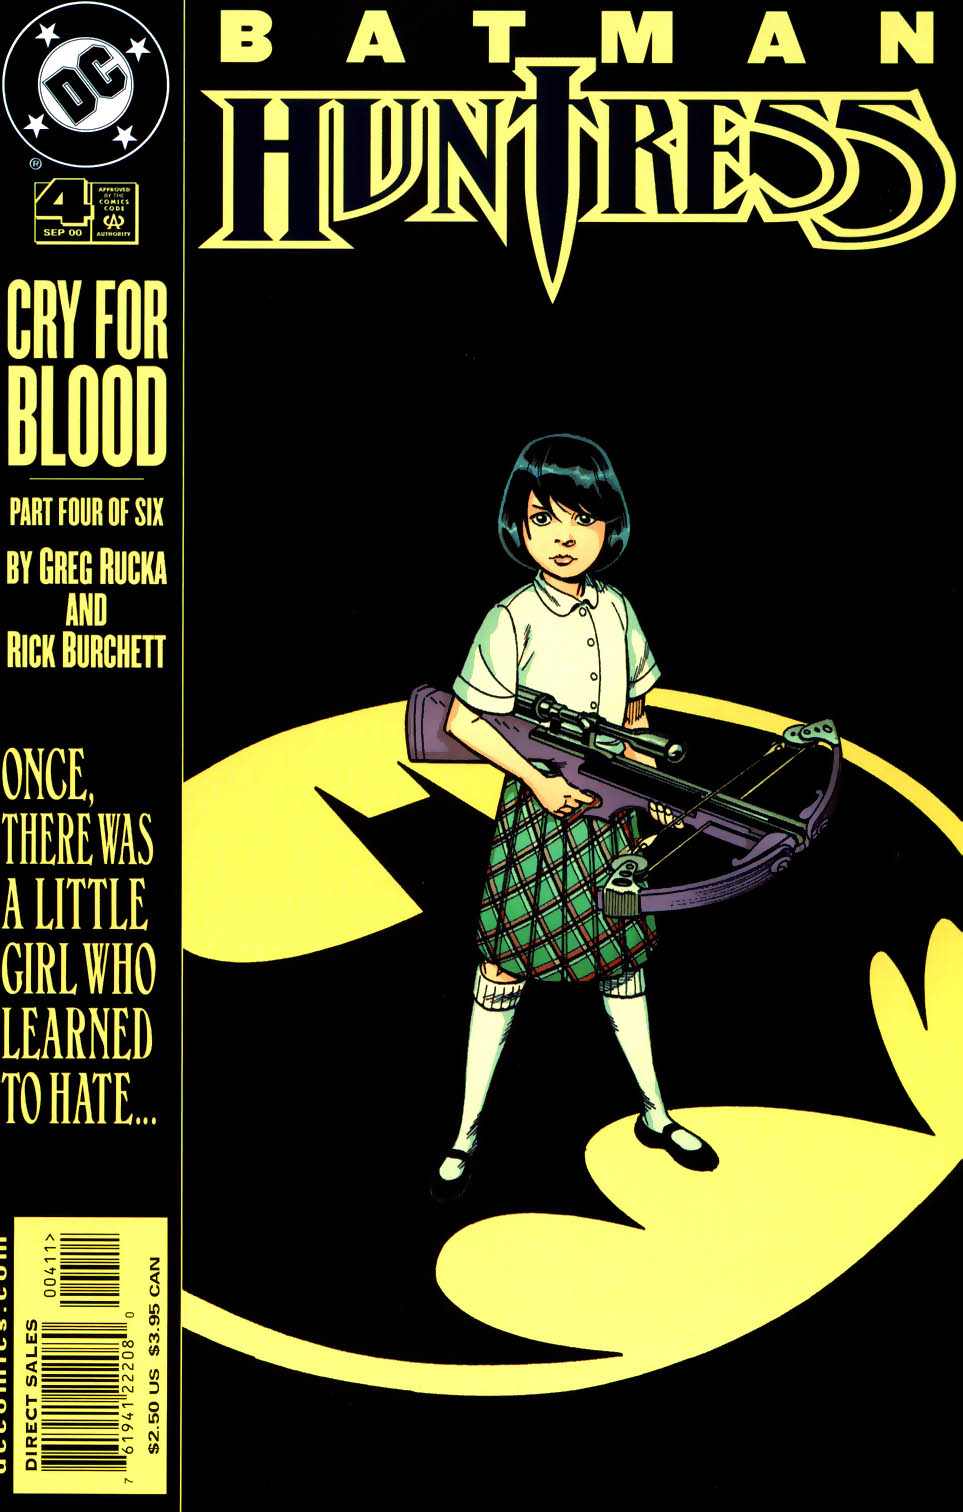 Read online Batman/Huntress: Cry for Blood comic -  Issue #4 - 1